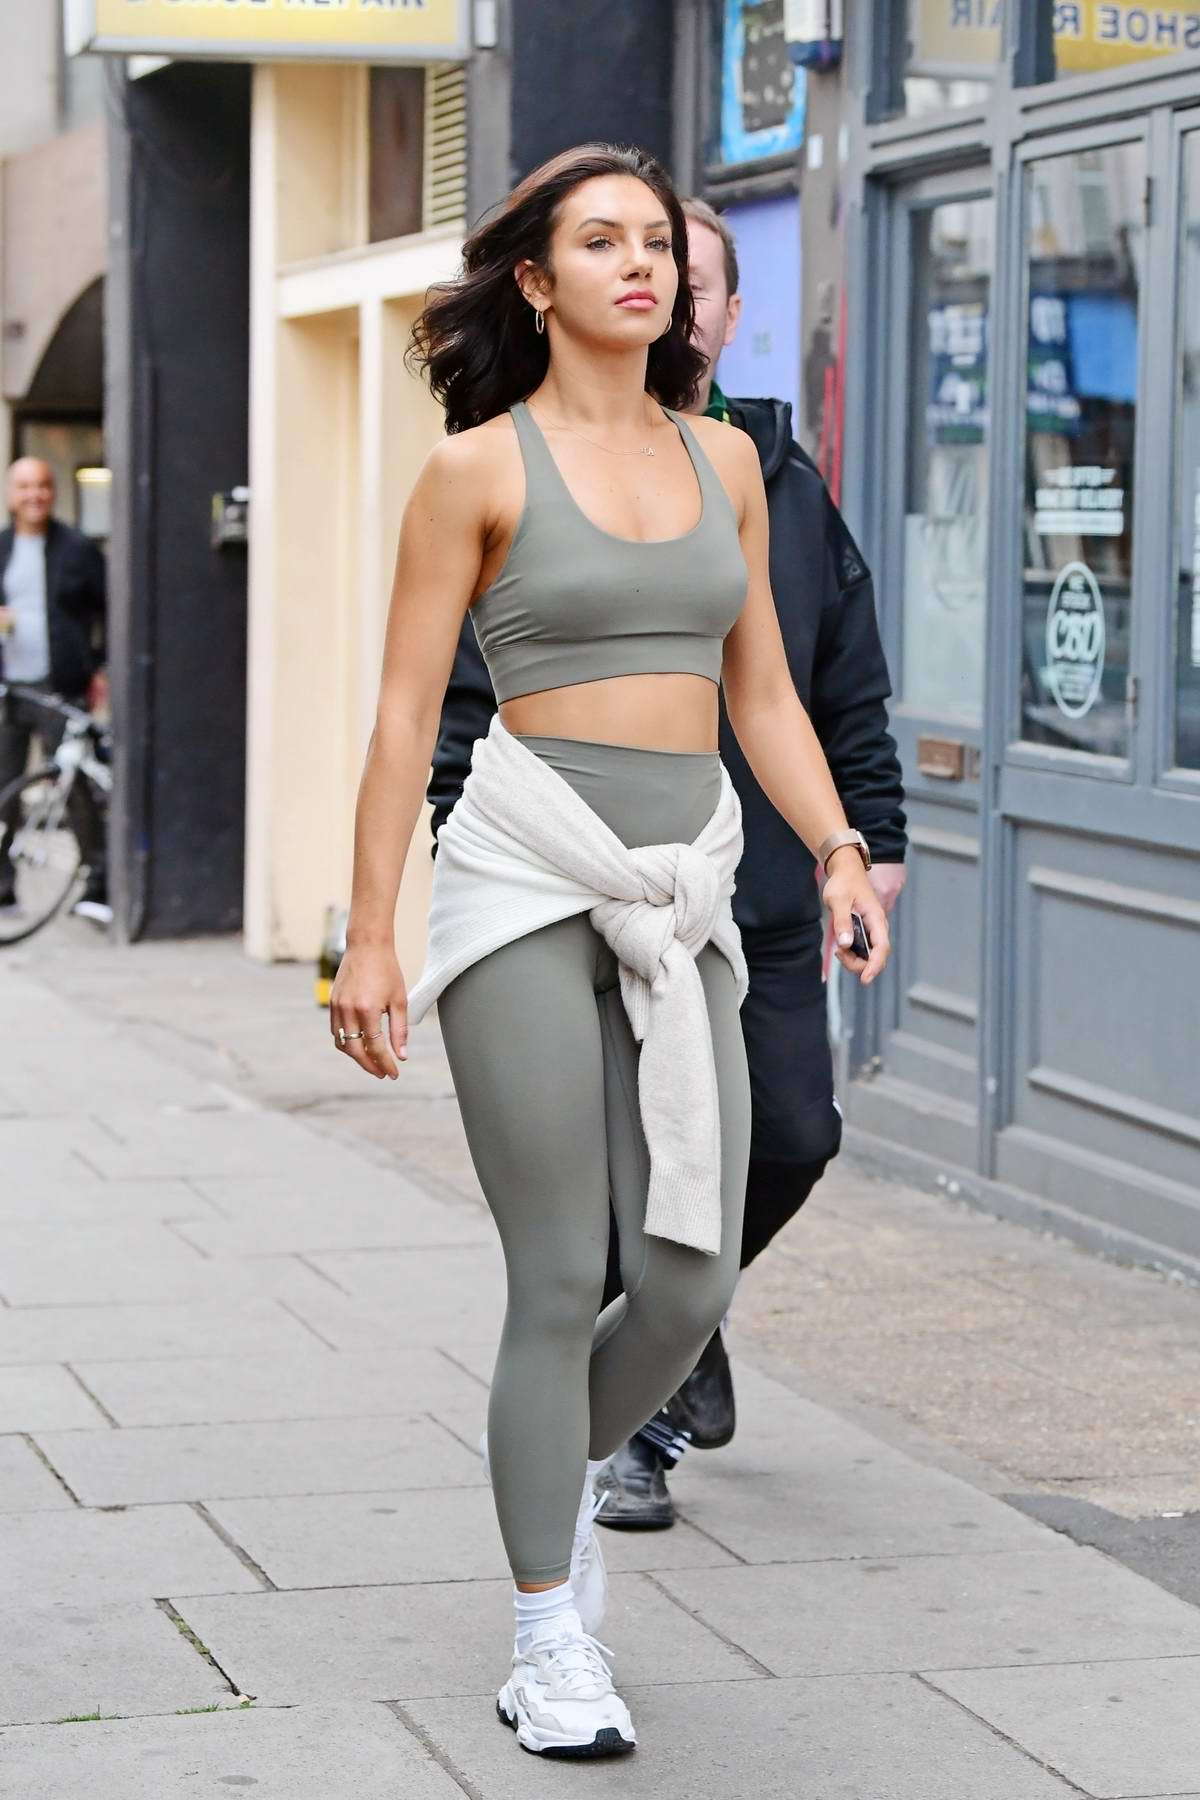 Alexandra Cane looks great in a green crop top and leggings while out with friends in Notting Hill, California